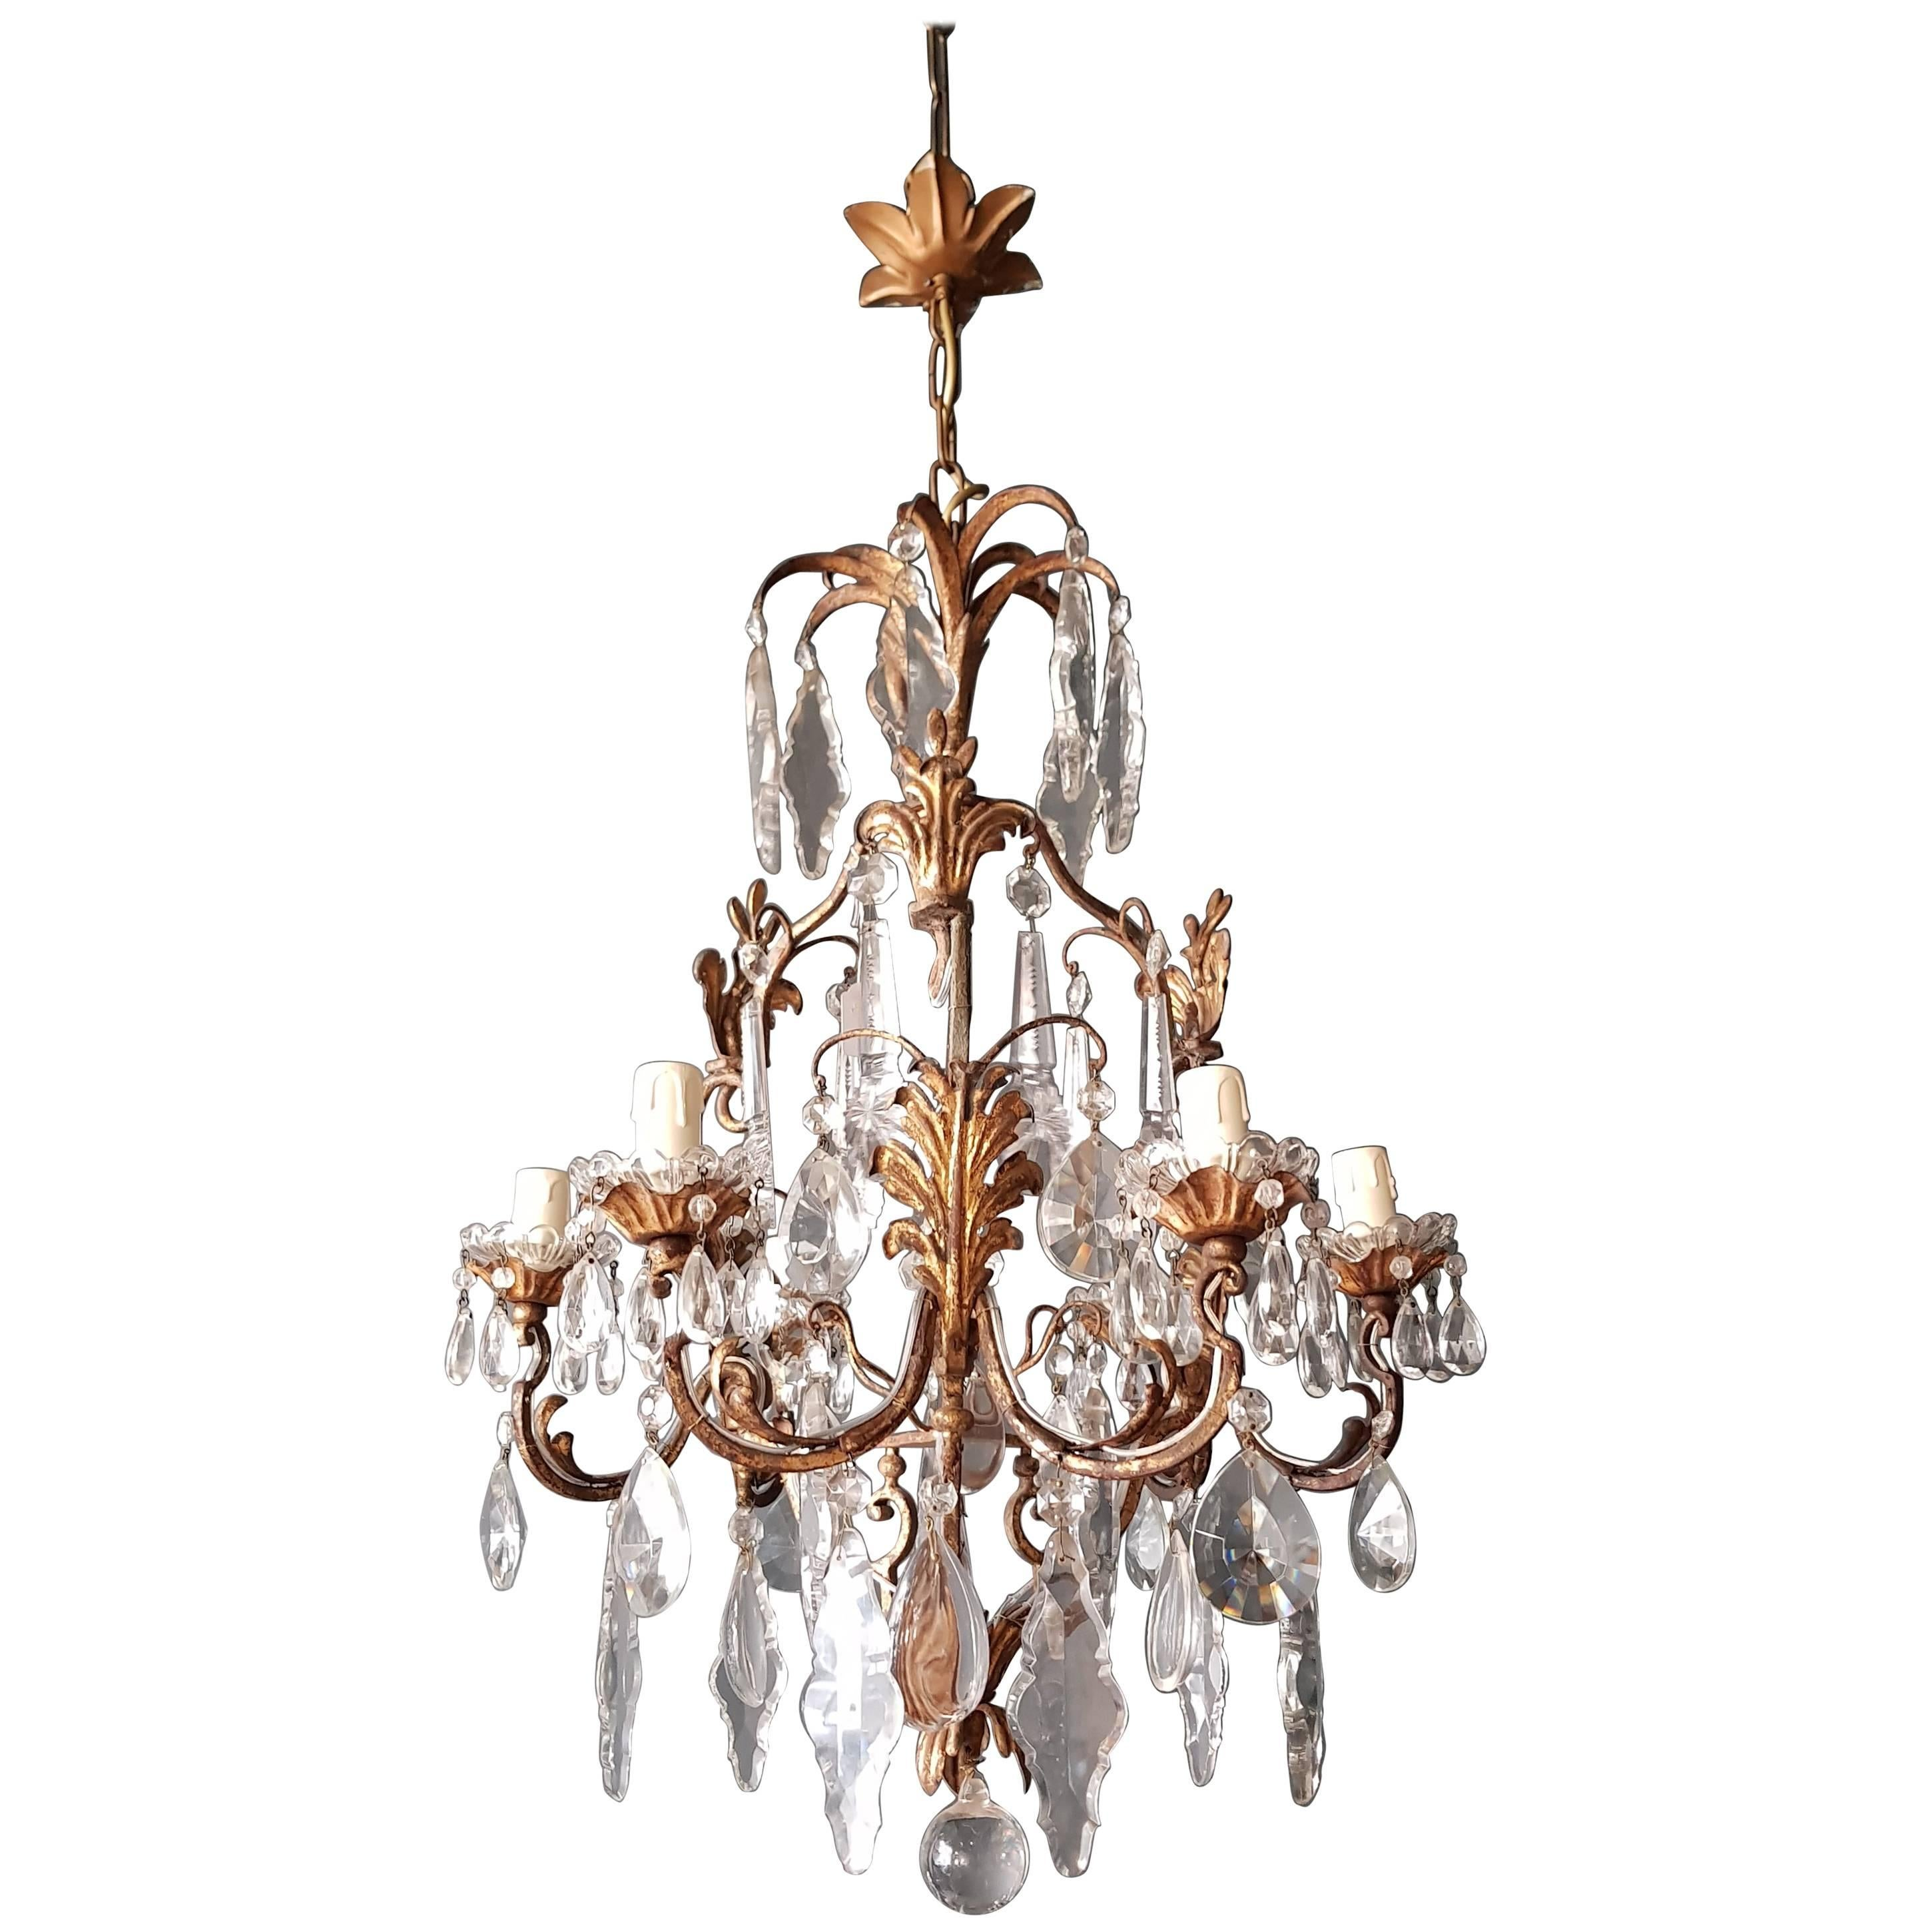 Crystal Chandelier Antique Ceiling Lamp Lustre Art Nouveau